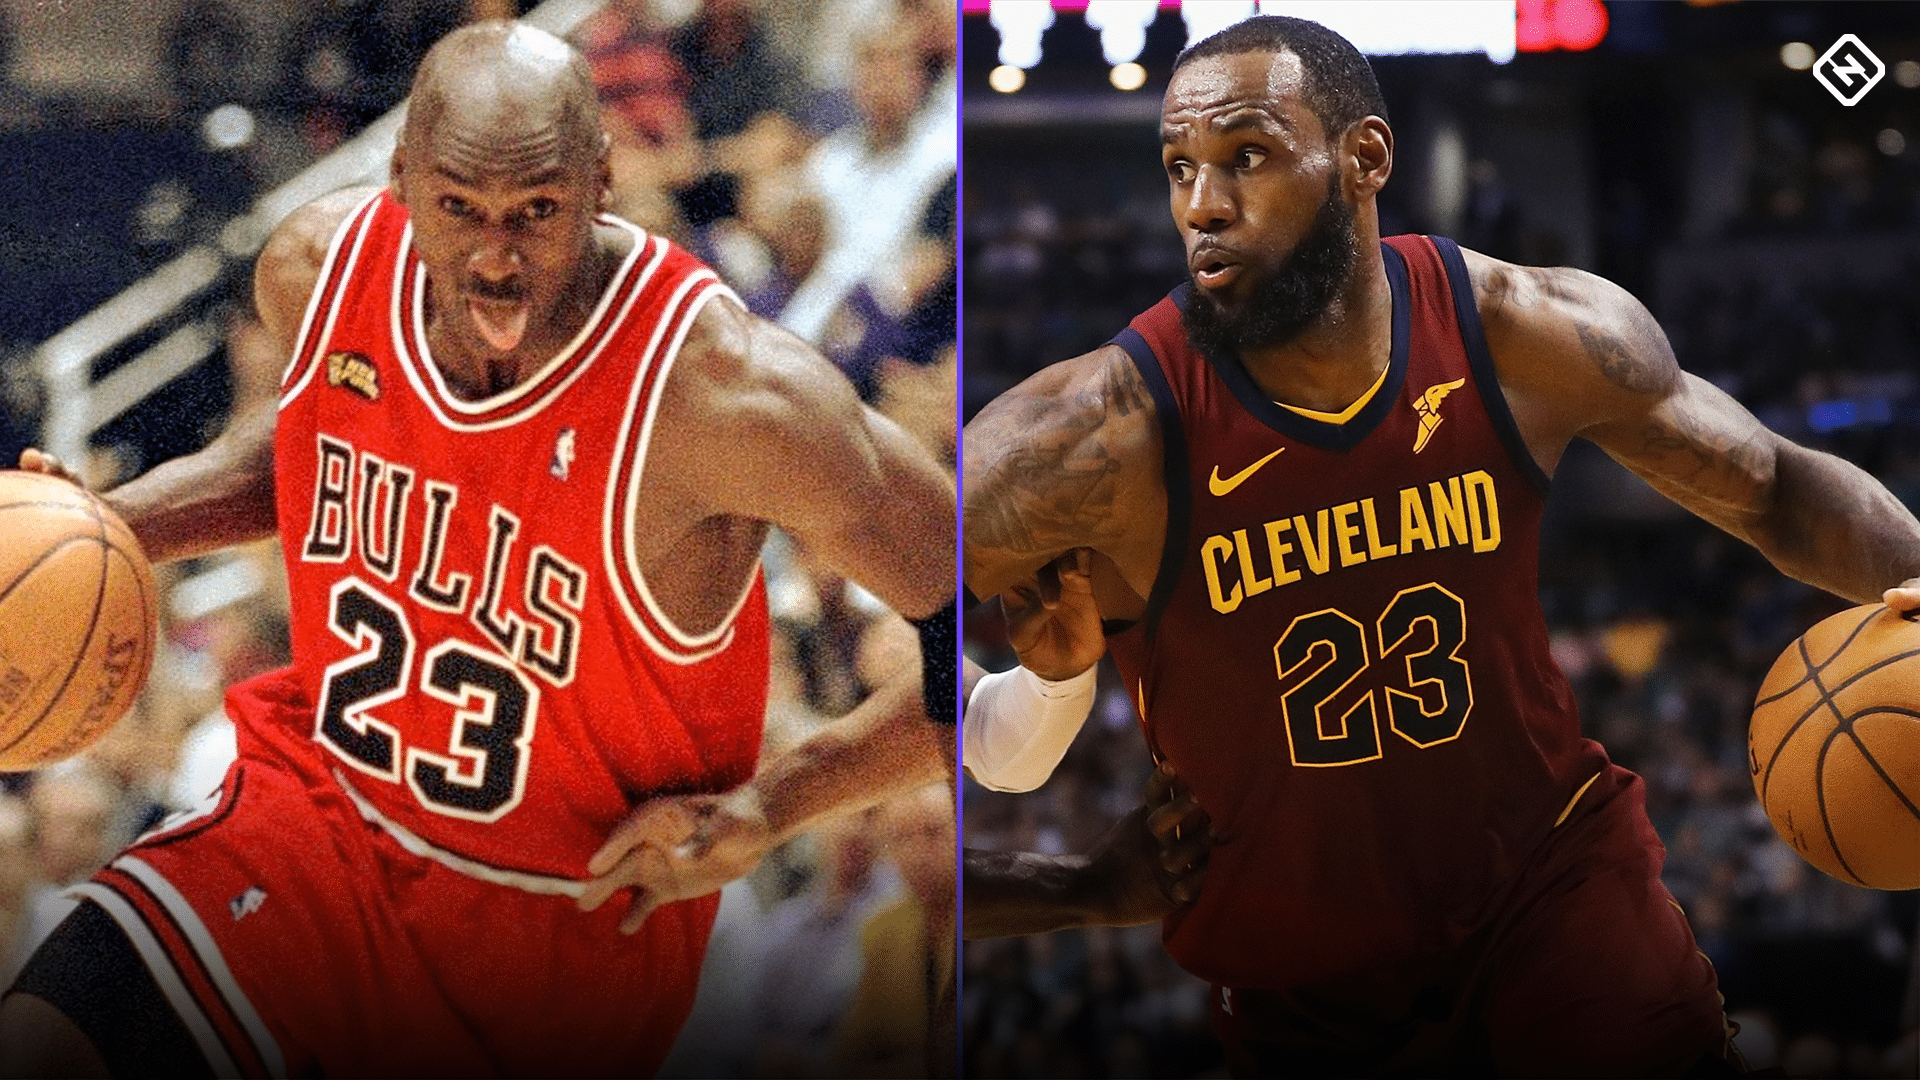 michael-jordan-vs-lebron-james-primarily-the-most-essential-stats-you-will-deserve-to-grab-in-the-goat-debate.png